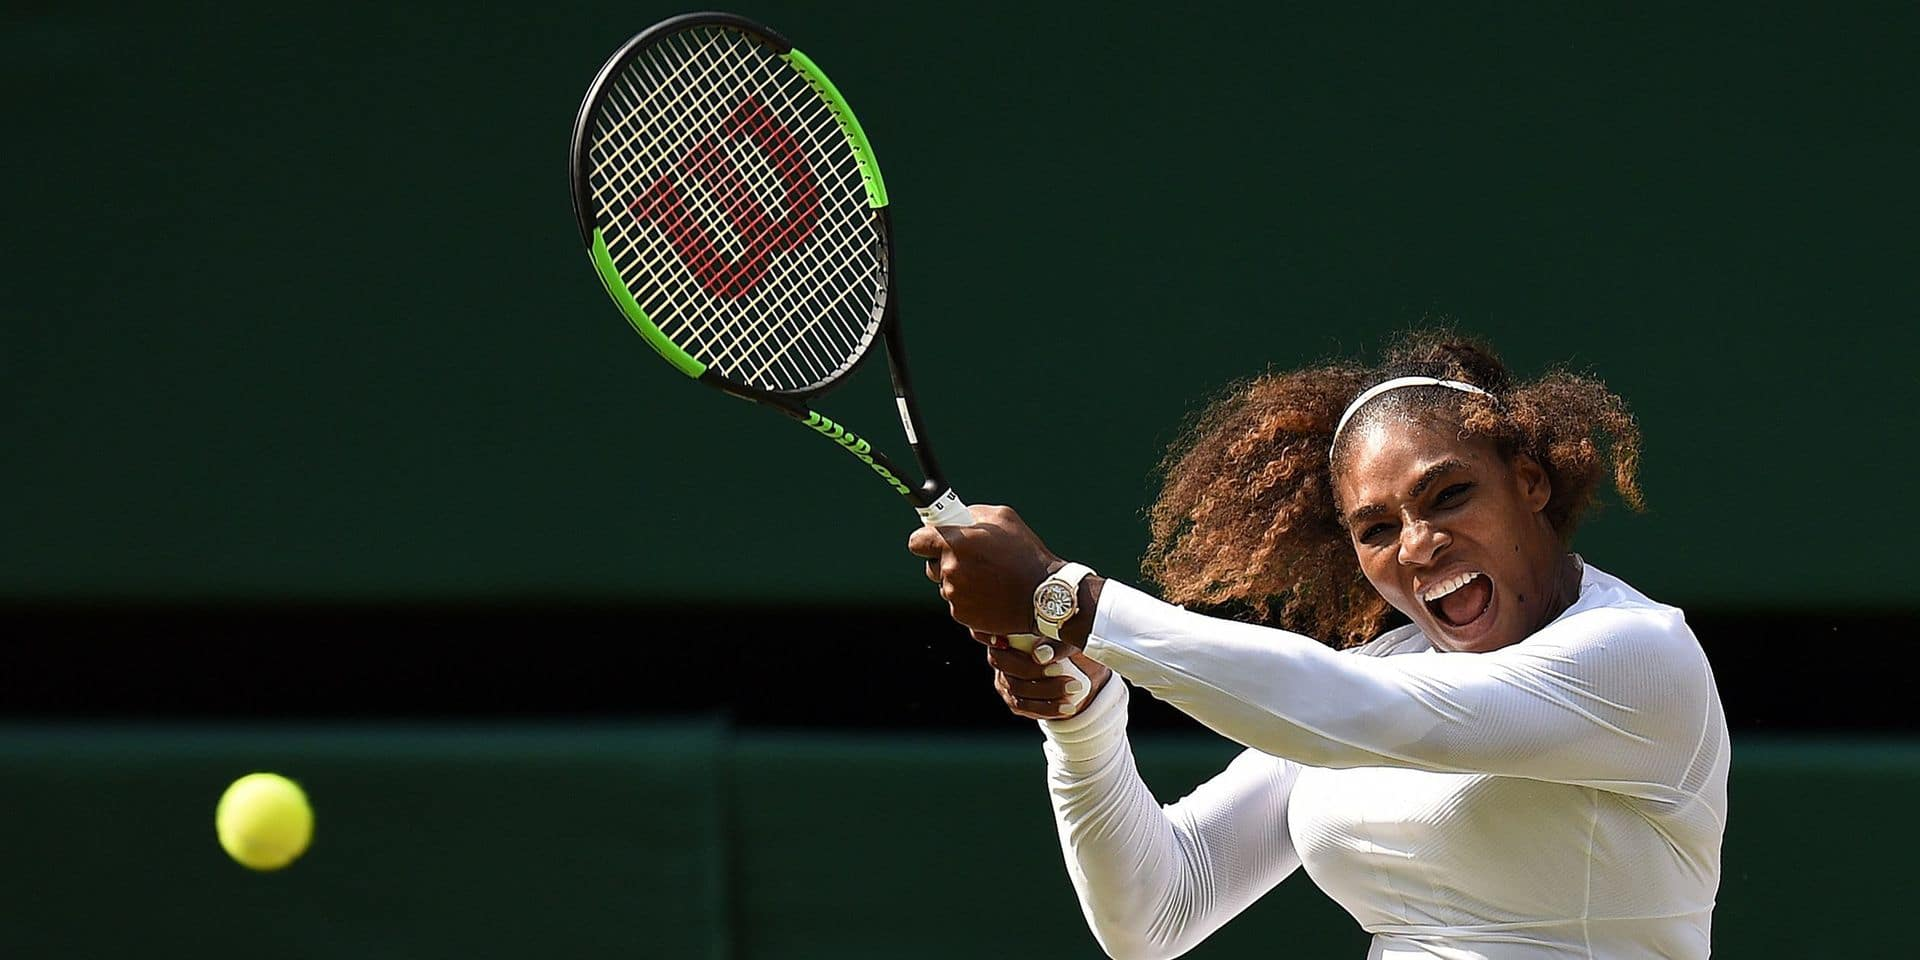 US player Serena Williams returns against Germany's Julia Goerges during their women's singles semi-final match on the tenth day of the 2018 Wimbledon Championships at The All England Lawn Tennis Club in Wimbledon, southwest London, on July 12, 2018. Williams won the match 6-2, 6-4. / AFP PHOTO / Oli SCARFF / RESTRICTED TO EDITORIAL USE